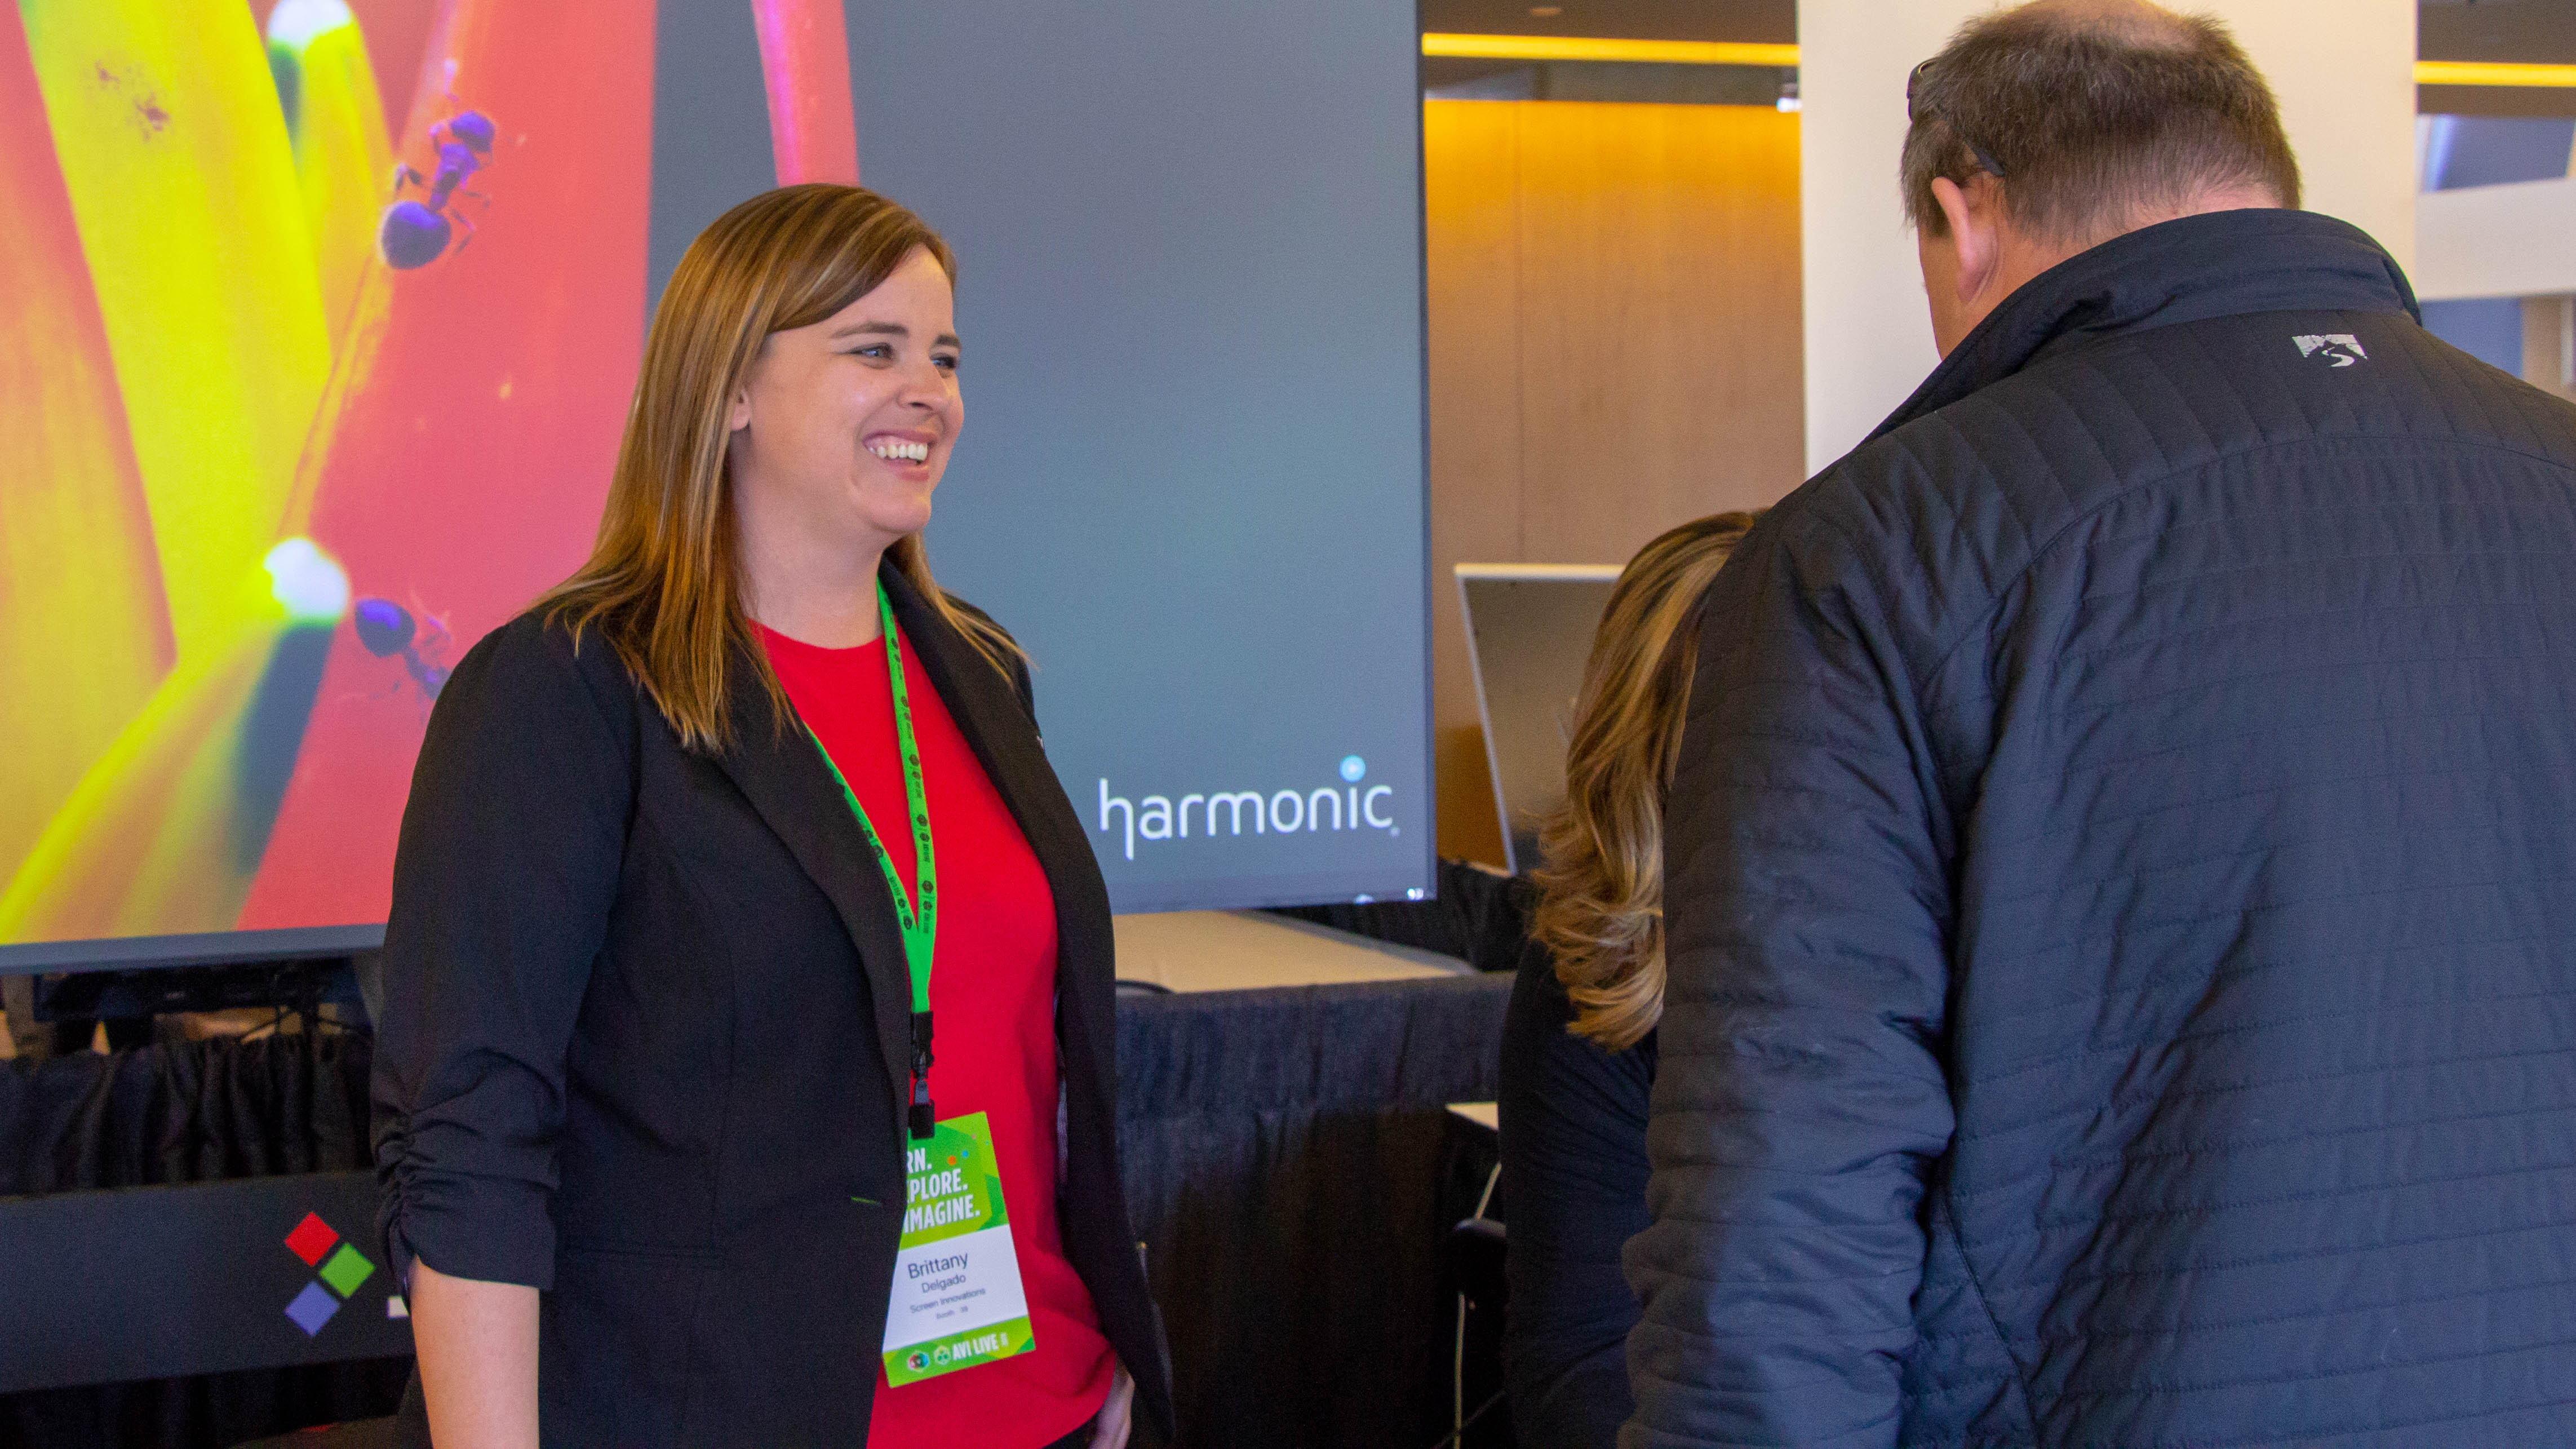 Brittany Delgado, with Screen Innovations, talks with an attendee at AVI LIVE in Minneapolis. | AVI Systems